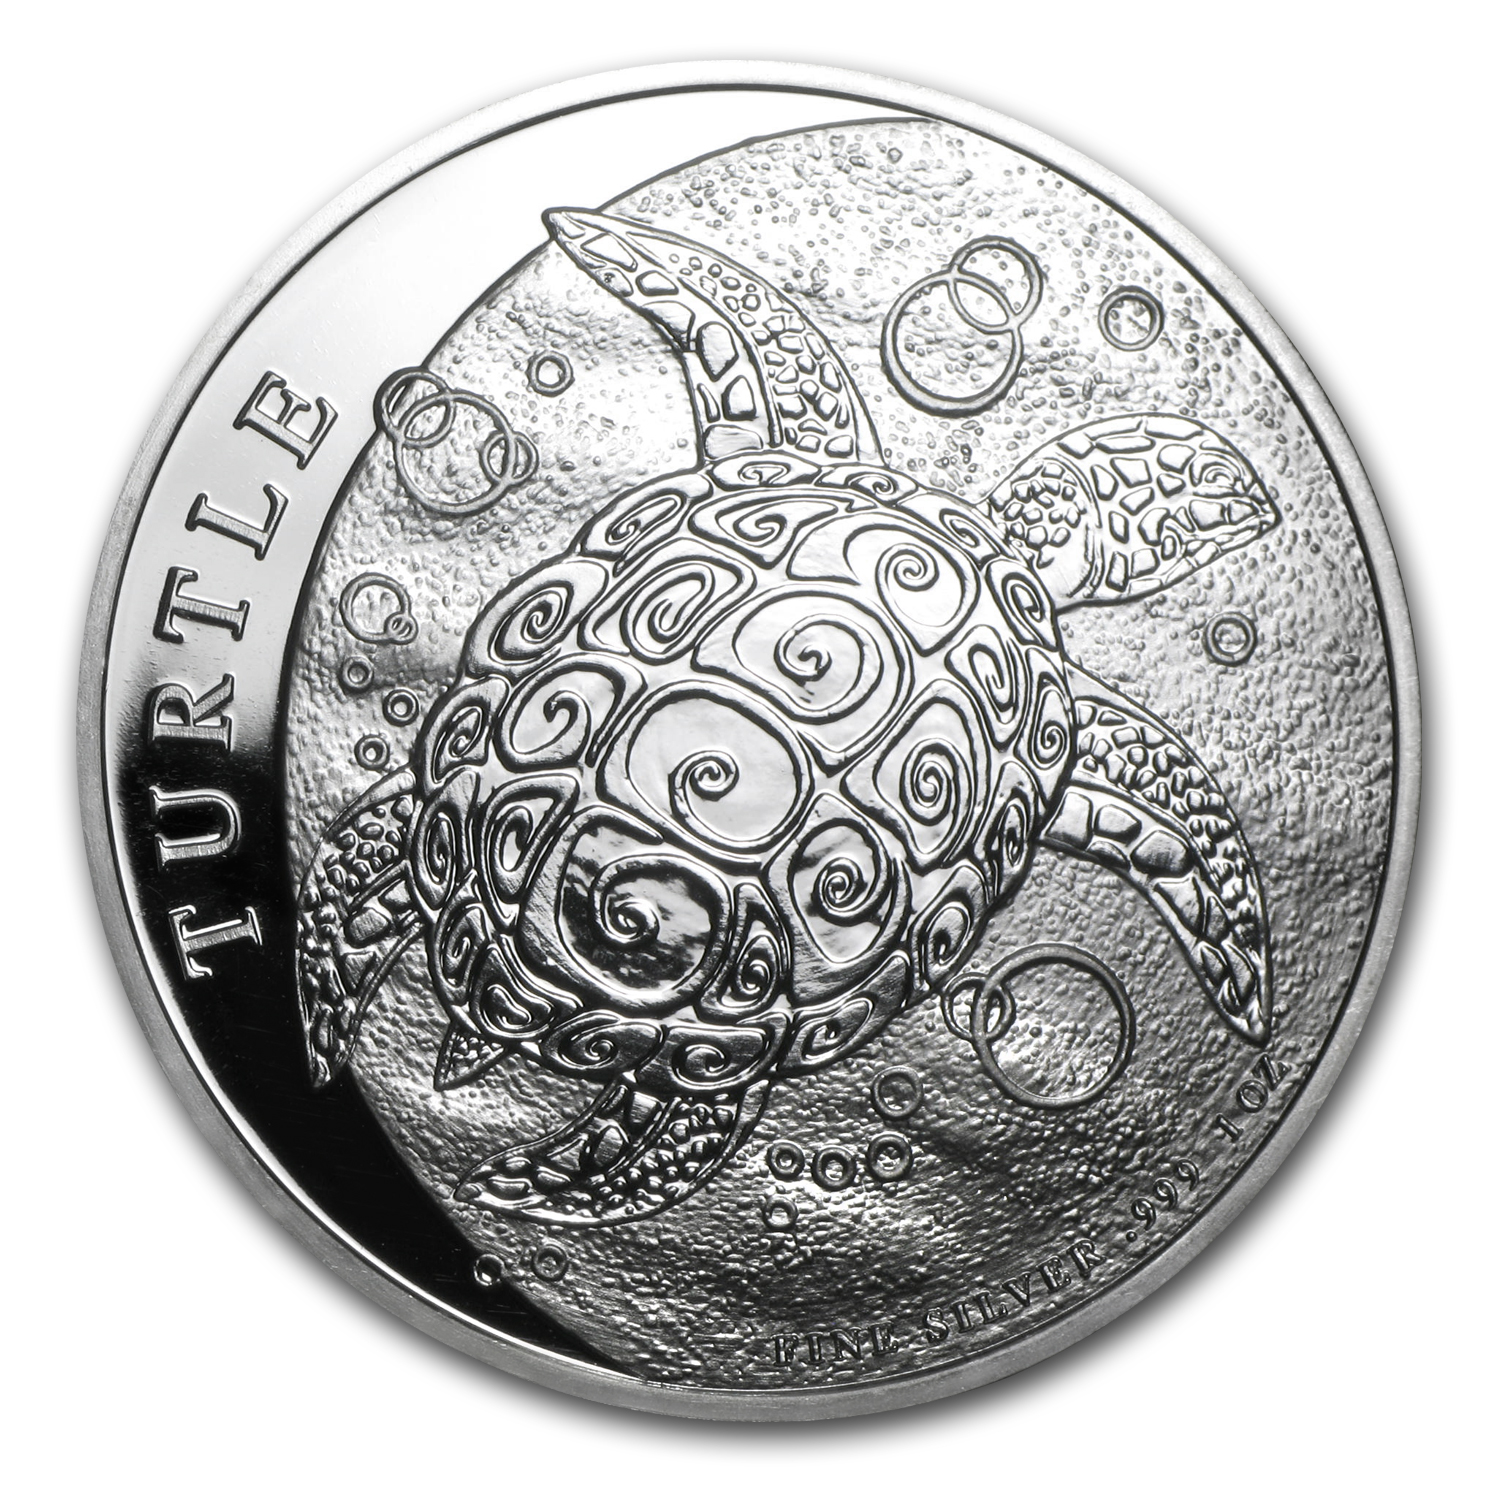 2014 1 oz Silver New Zealand Mint $2 Niue Hawksbill Turtle BU